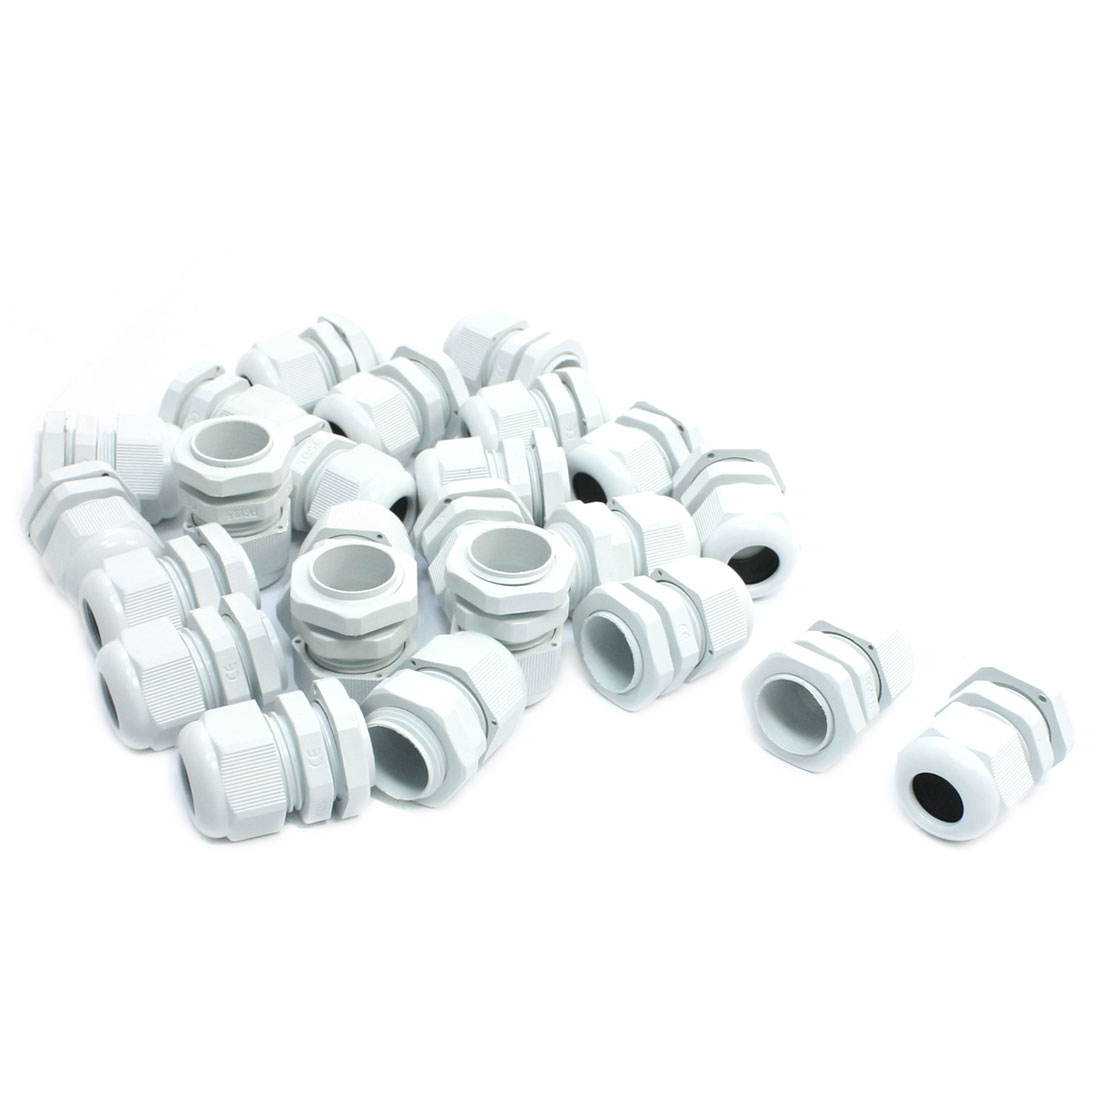 24Pcs PG13.5 6mm to 12mm Waterproof Connector Adapter Joint Plastic Cable Gland White